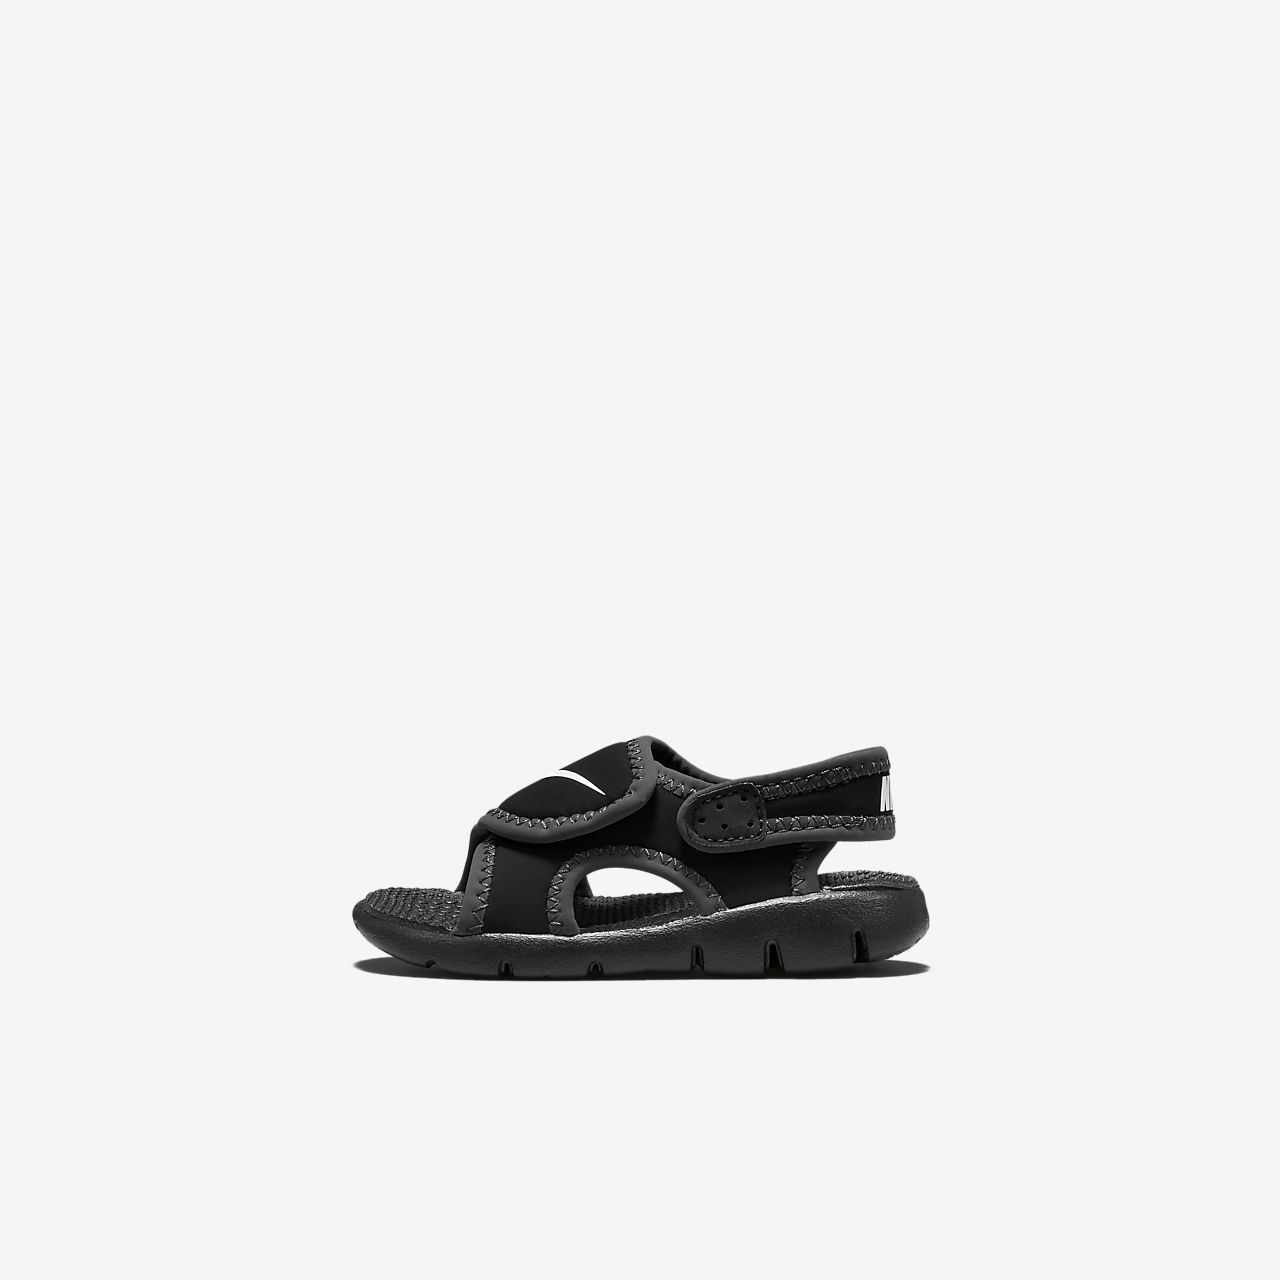 ... Nike Sunray Adjust 4 Infant/Toddler Sandal